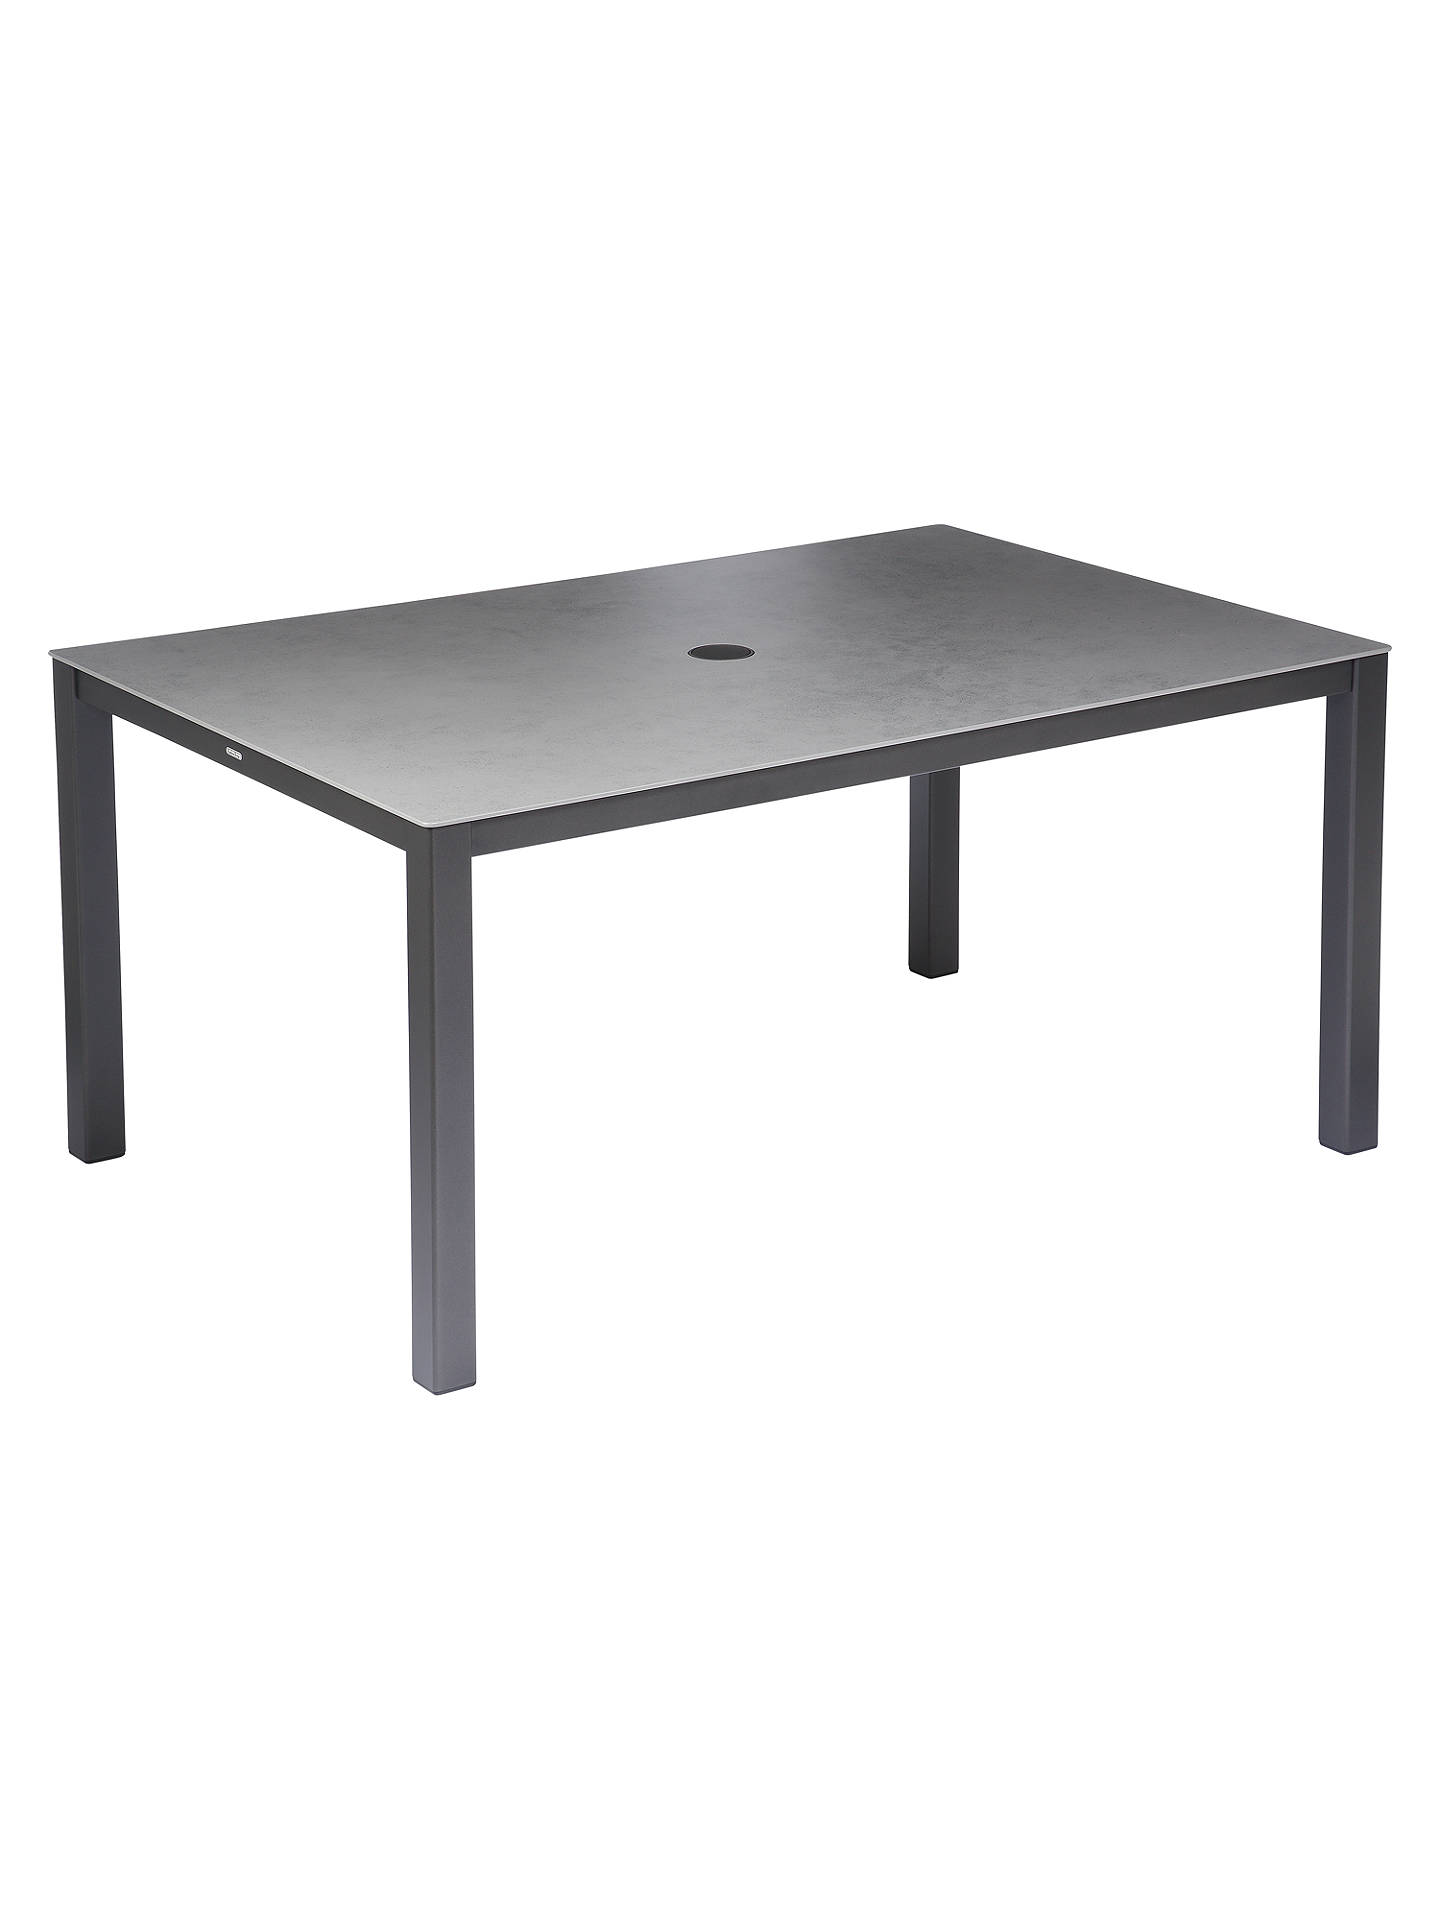 BuyBarlow Tyrie Cayman 6-Seater Garden Dining Table, Graphite / Storm Online at johnlewis.com